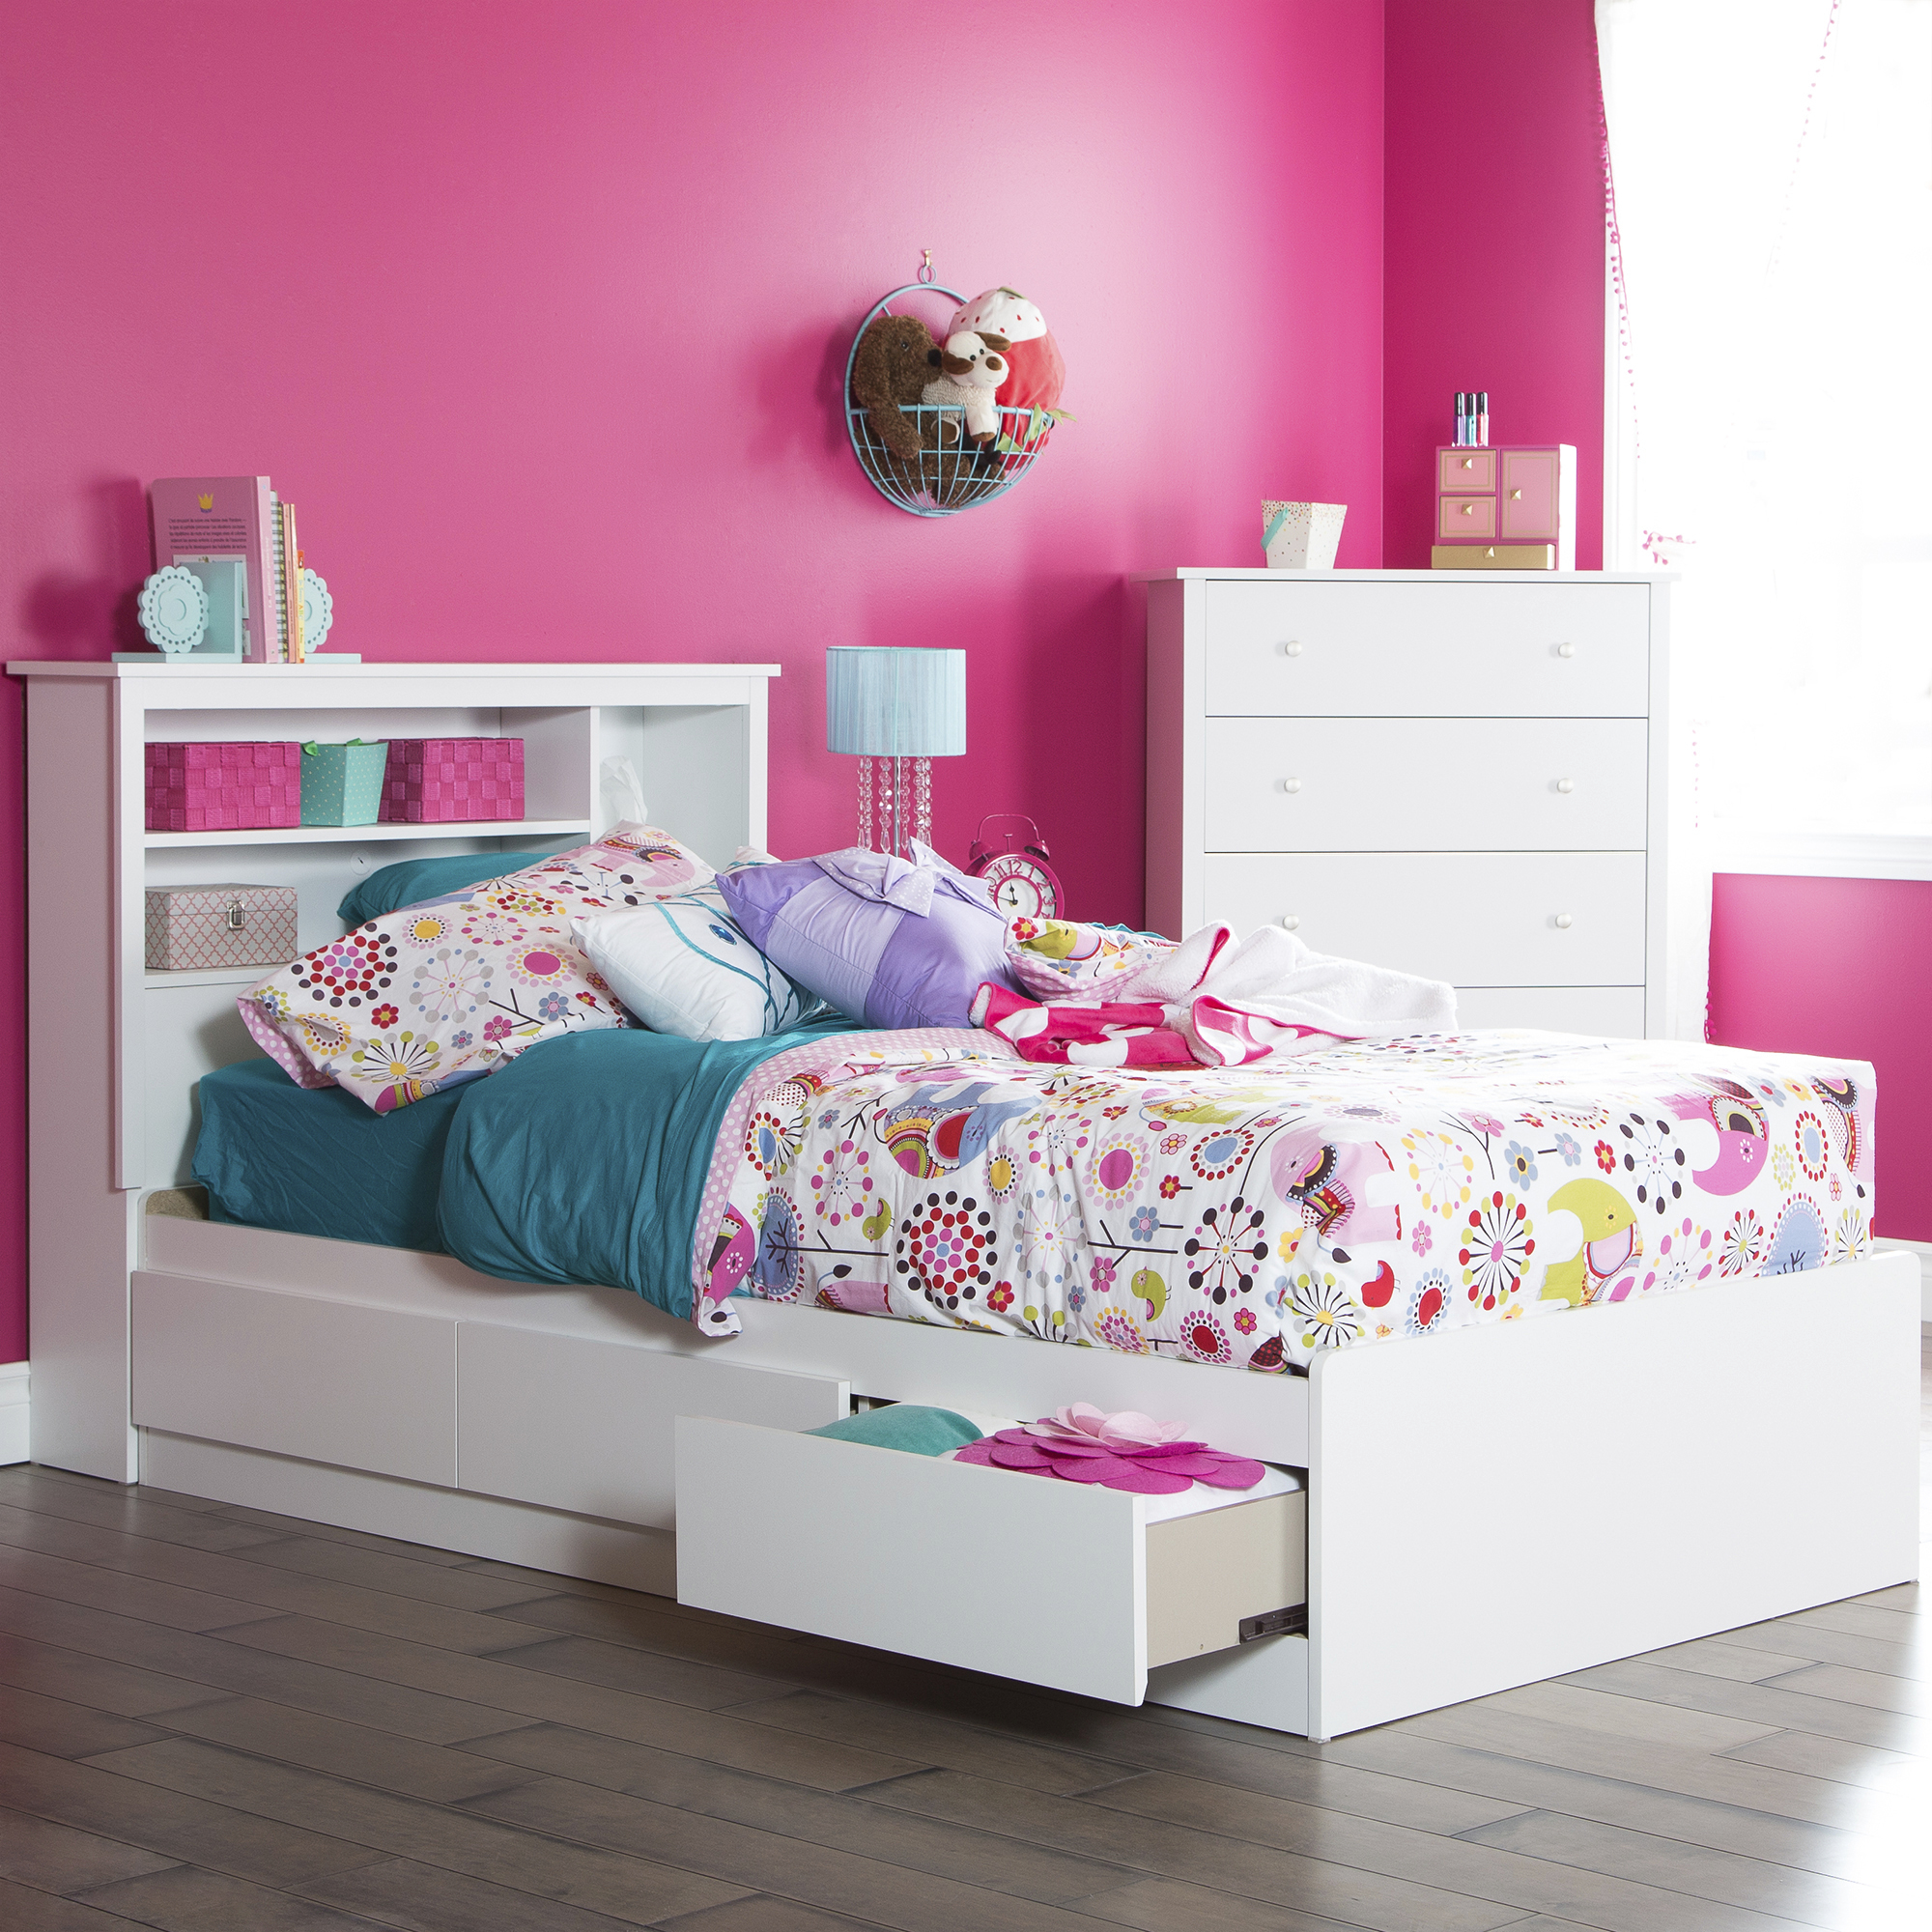 South Shore Vito Kids Bedroom 3-piece Value Bundle, Multiple finishes